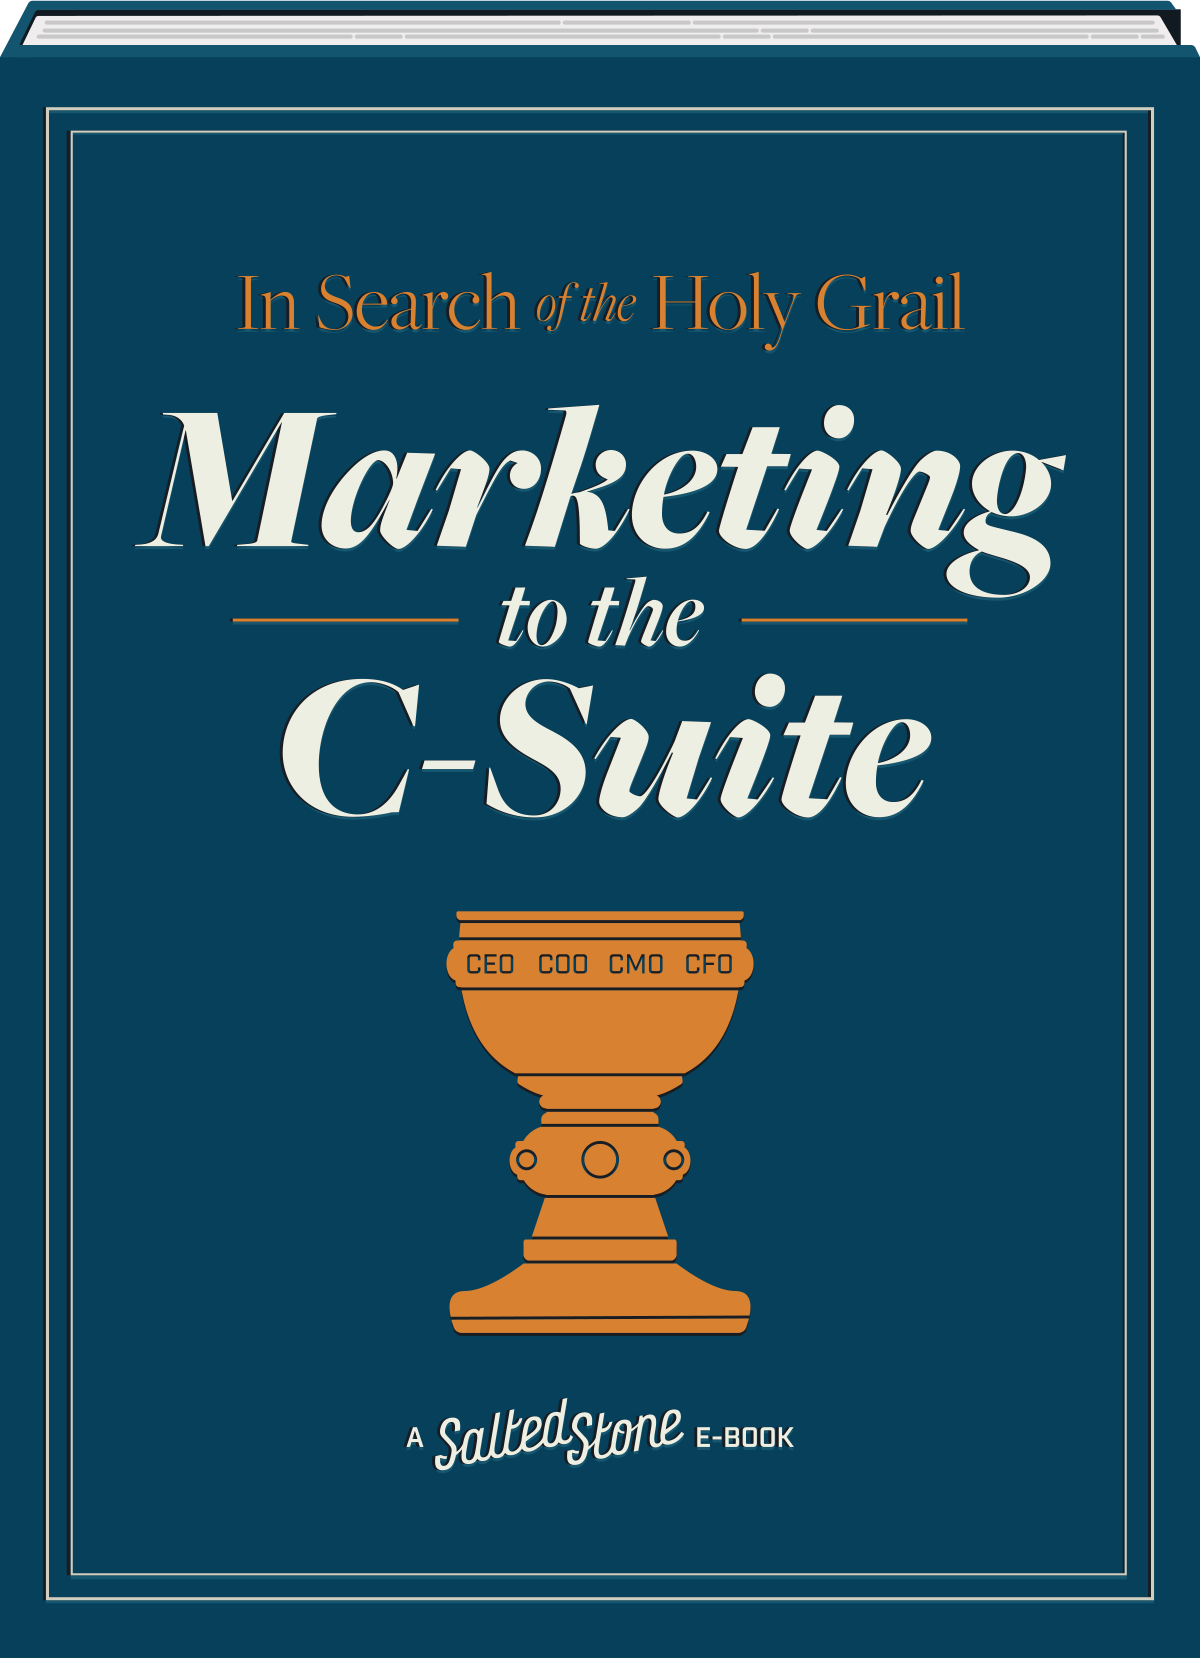 In Search of the Holy Grail: Marketing to the C-Suite